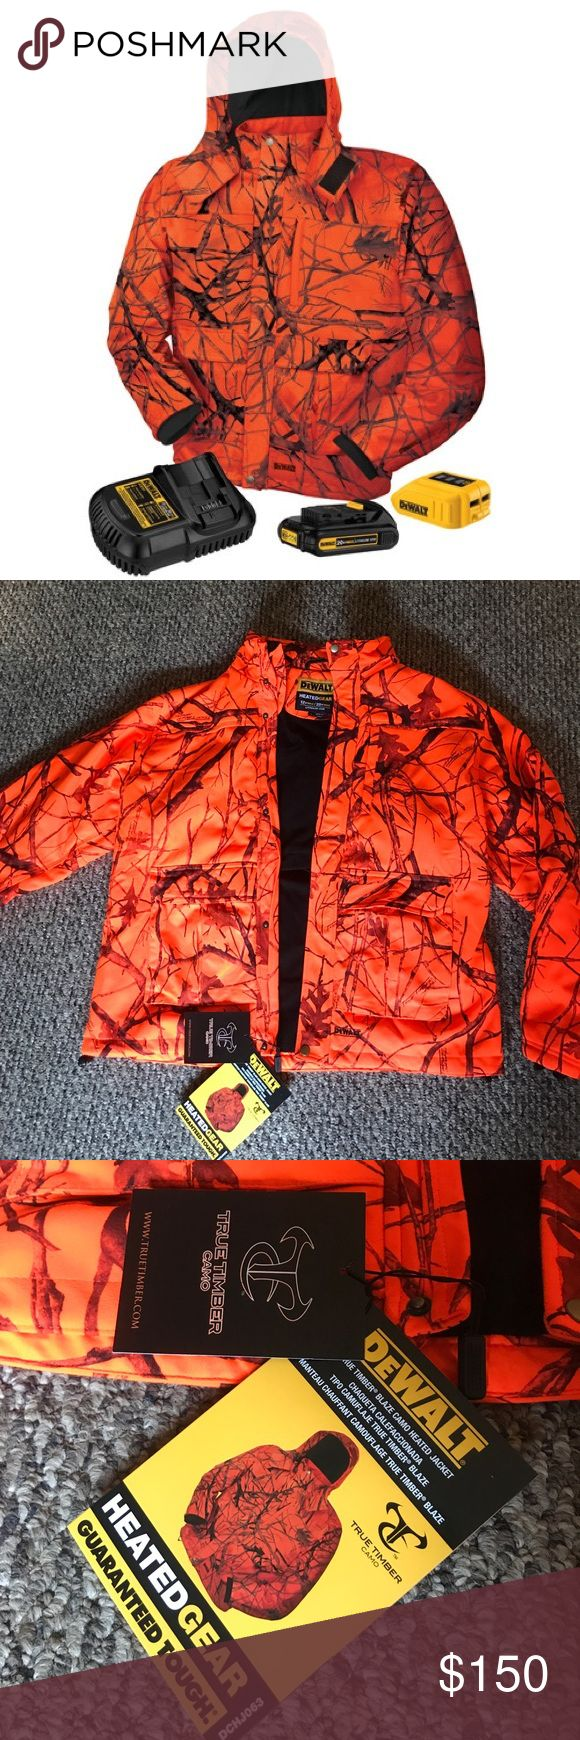 DEWALT hunters heated jacket w/battery+charger NWT DeWalt DCHJ063C1-XL Extra Large 20V/12V MAX Blaze Camo Heated Jacket Kit. 🦆🦌🦃 NWT!   INCLUDES: • DCB201 20V MAX* Li-Ion Battery (1.5Ah), Fast Charger, DCB091 Power Source/USB Adaptor FEATURES: Battery20V/12V MAX Heat Zones: 4, L/R chest, mid-back, and collar Settings: High, Med, Low + Pre-Heat Quiet, wind & water resistant, 7 pockets, Removable hood Hours of core body warmth and continuous heat Battery adaptor includes battery fuel gauge…